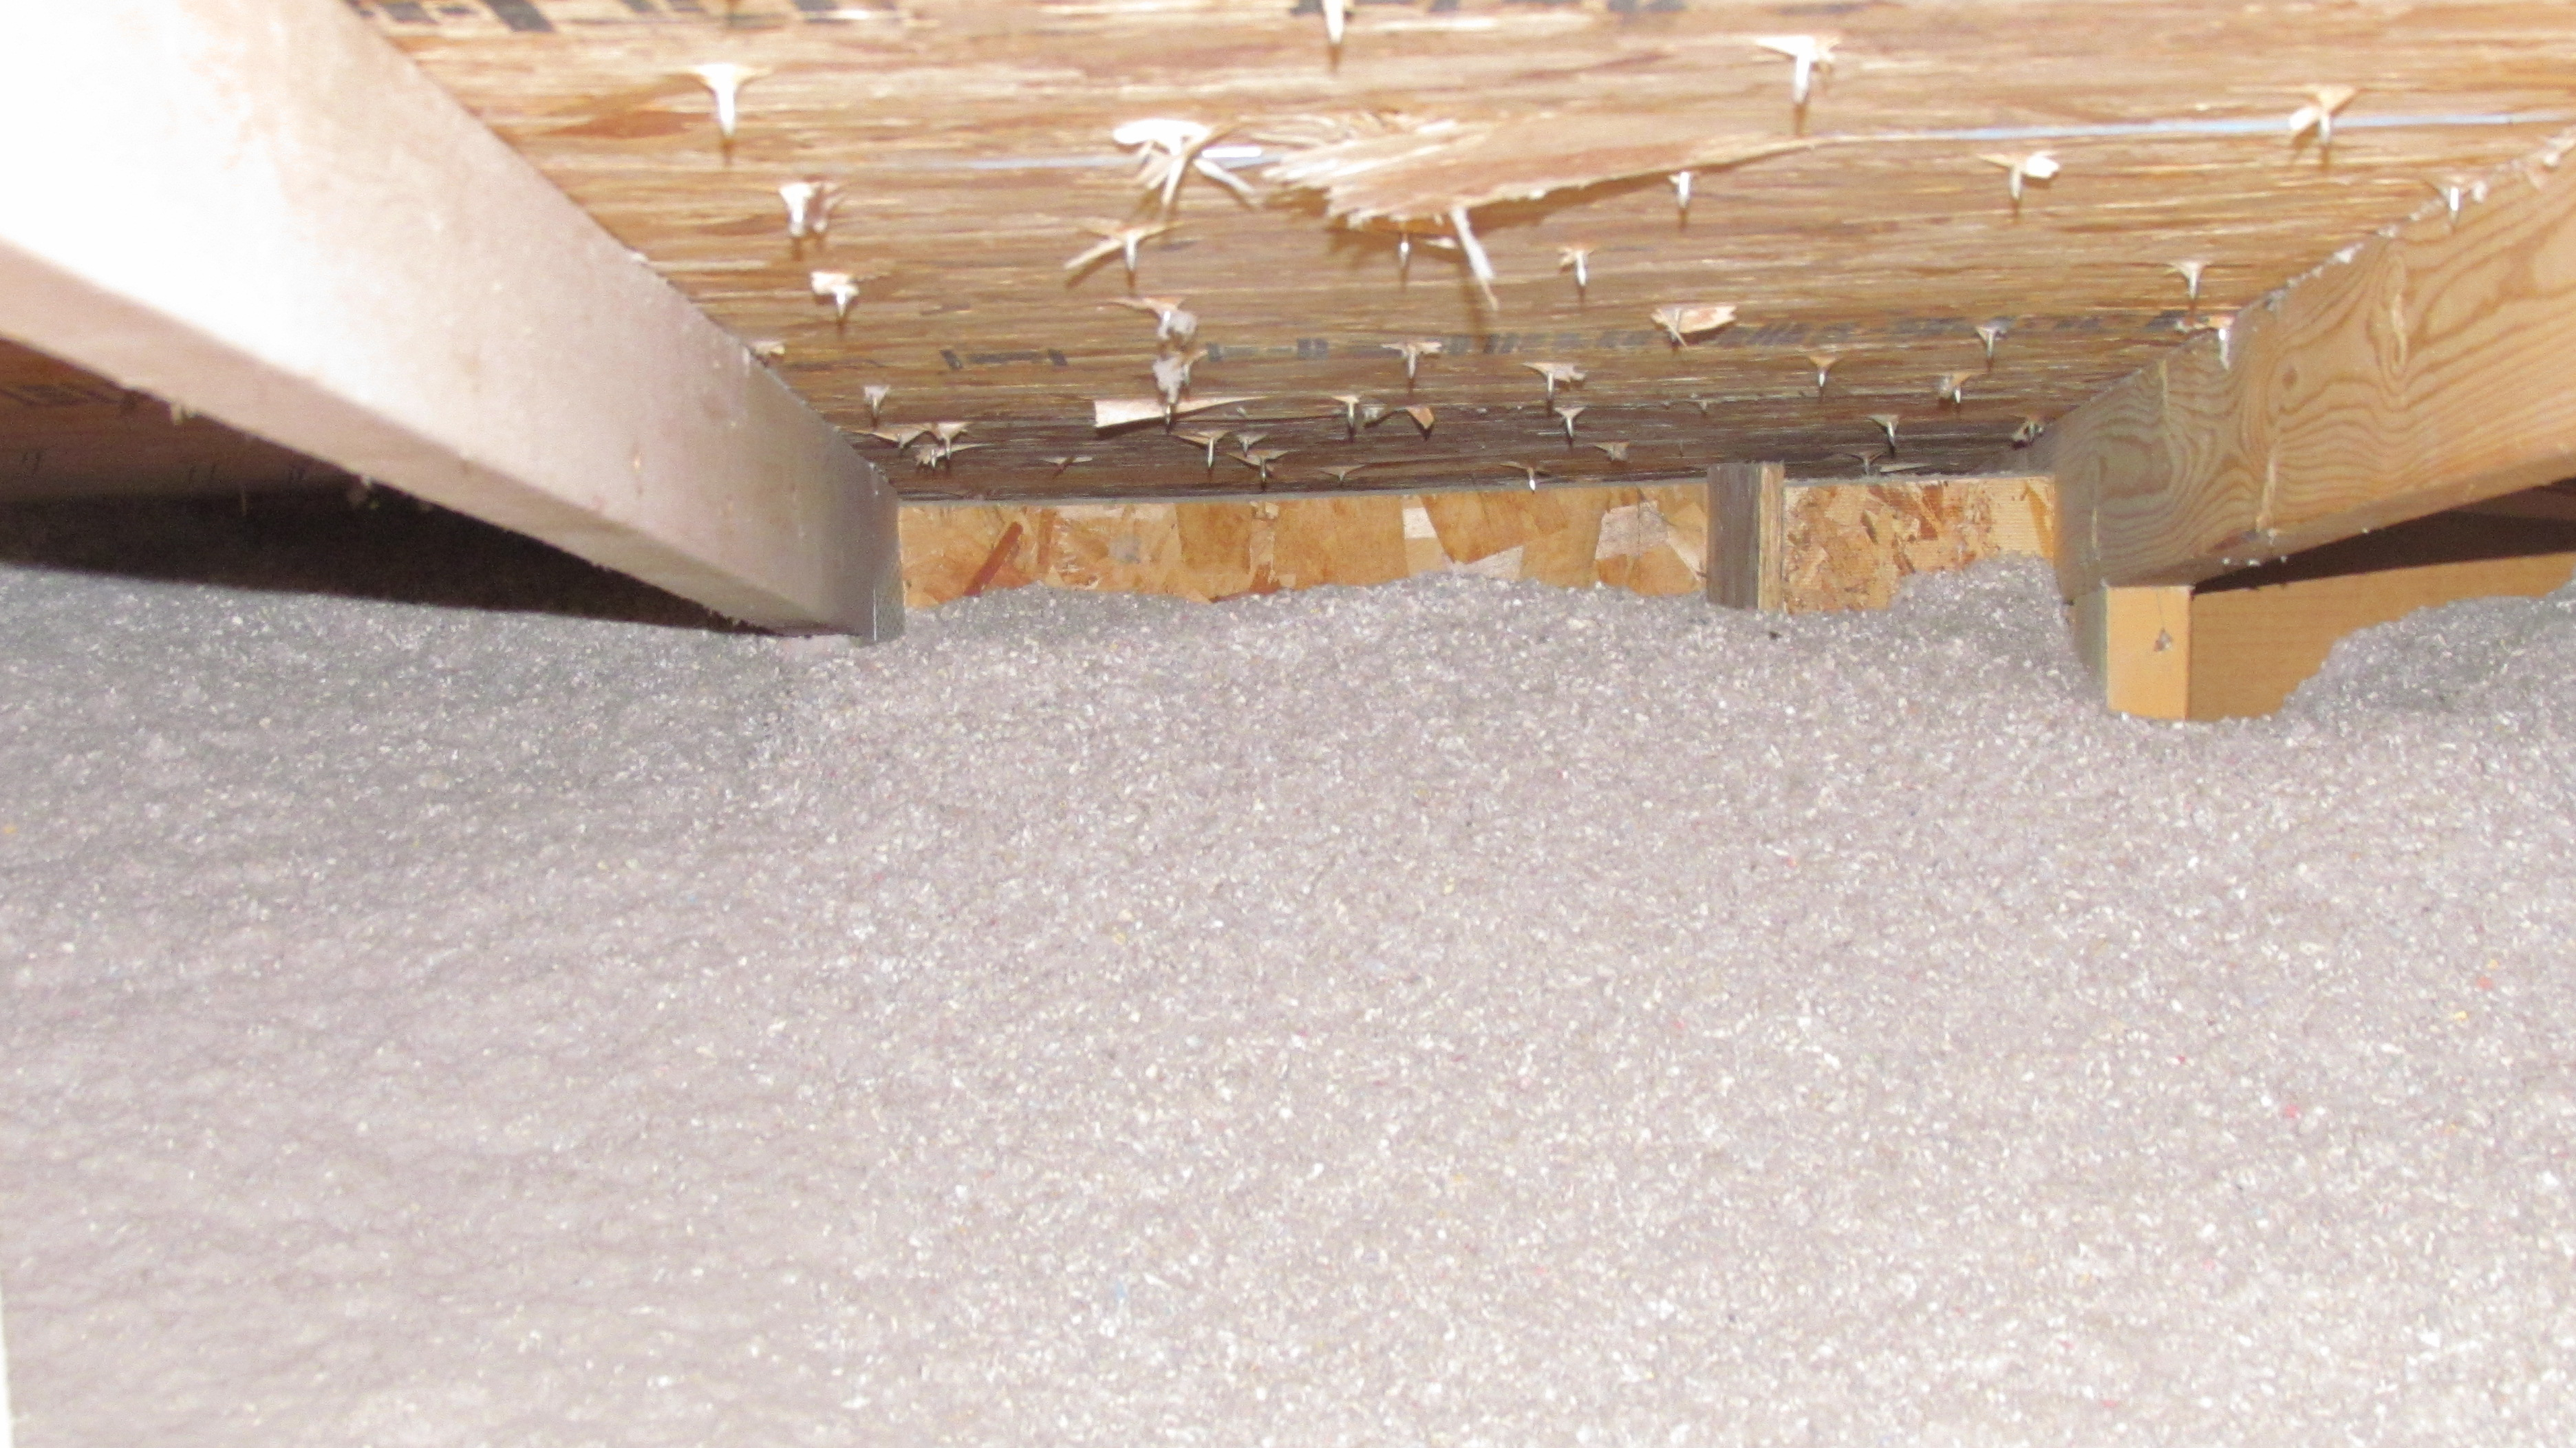 No insulation near soffit